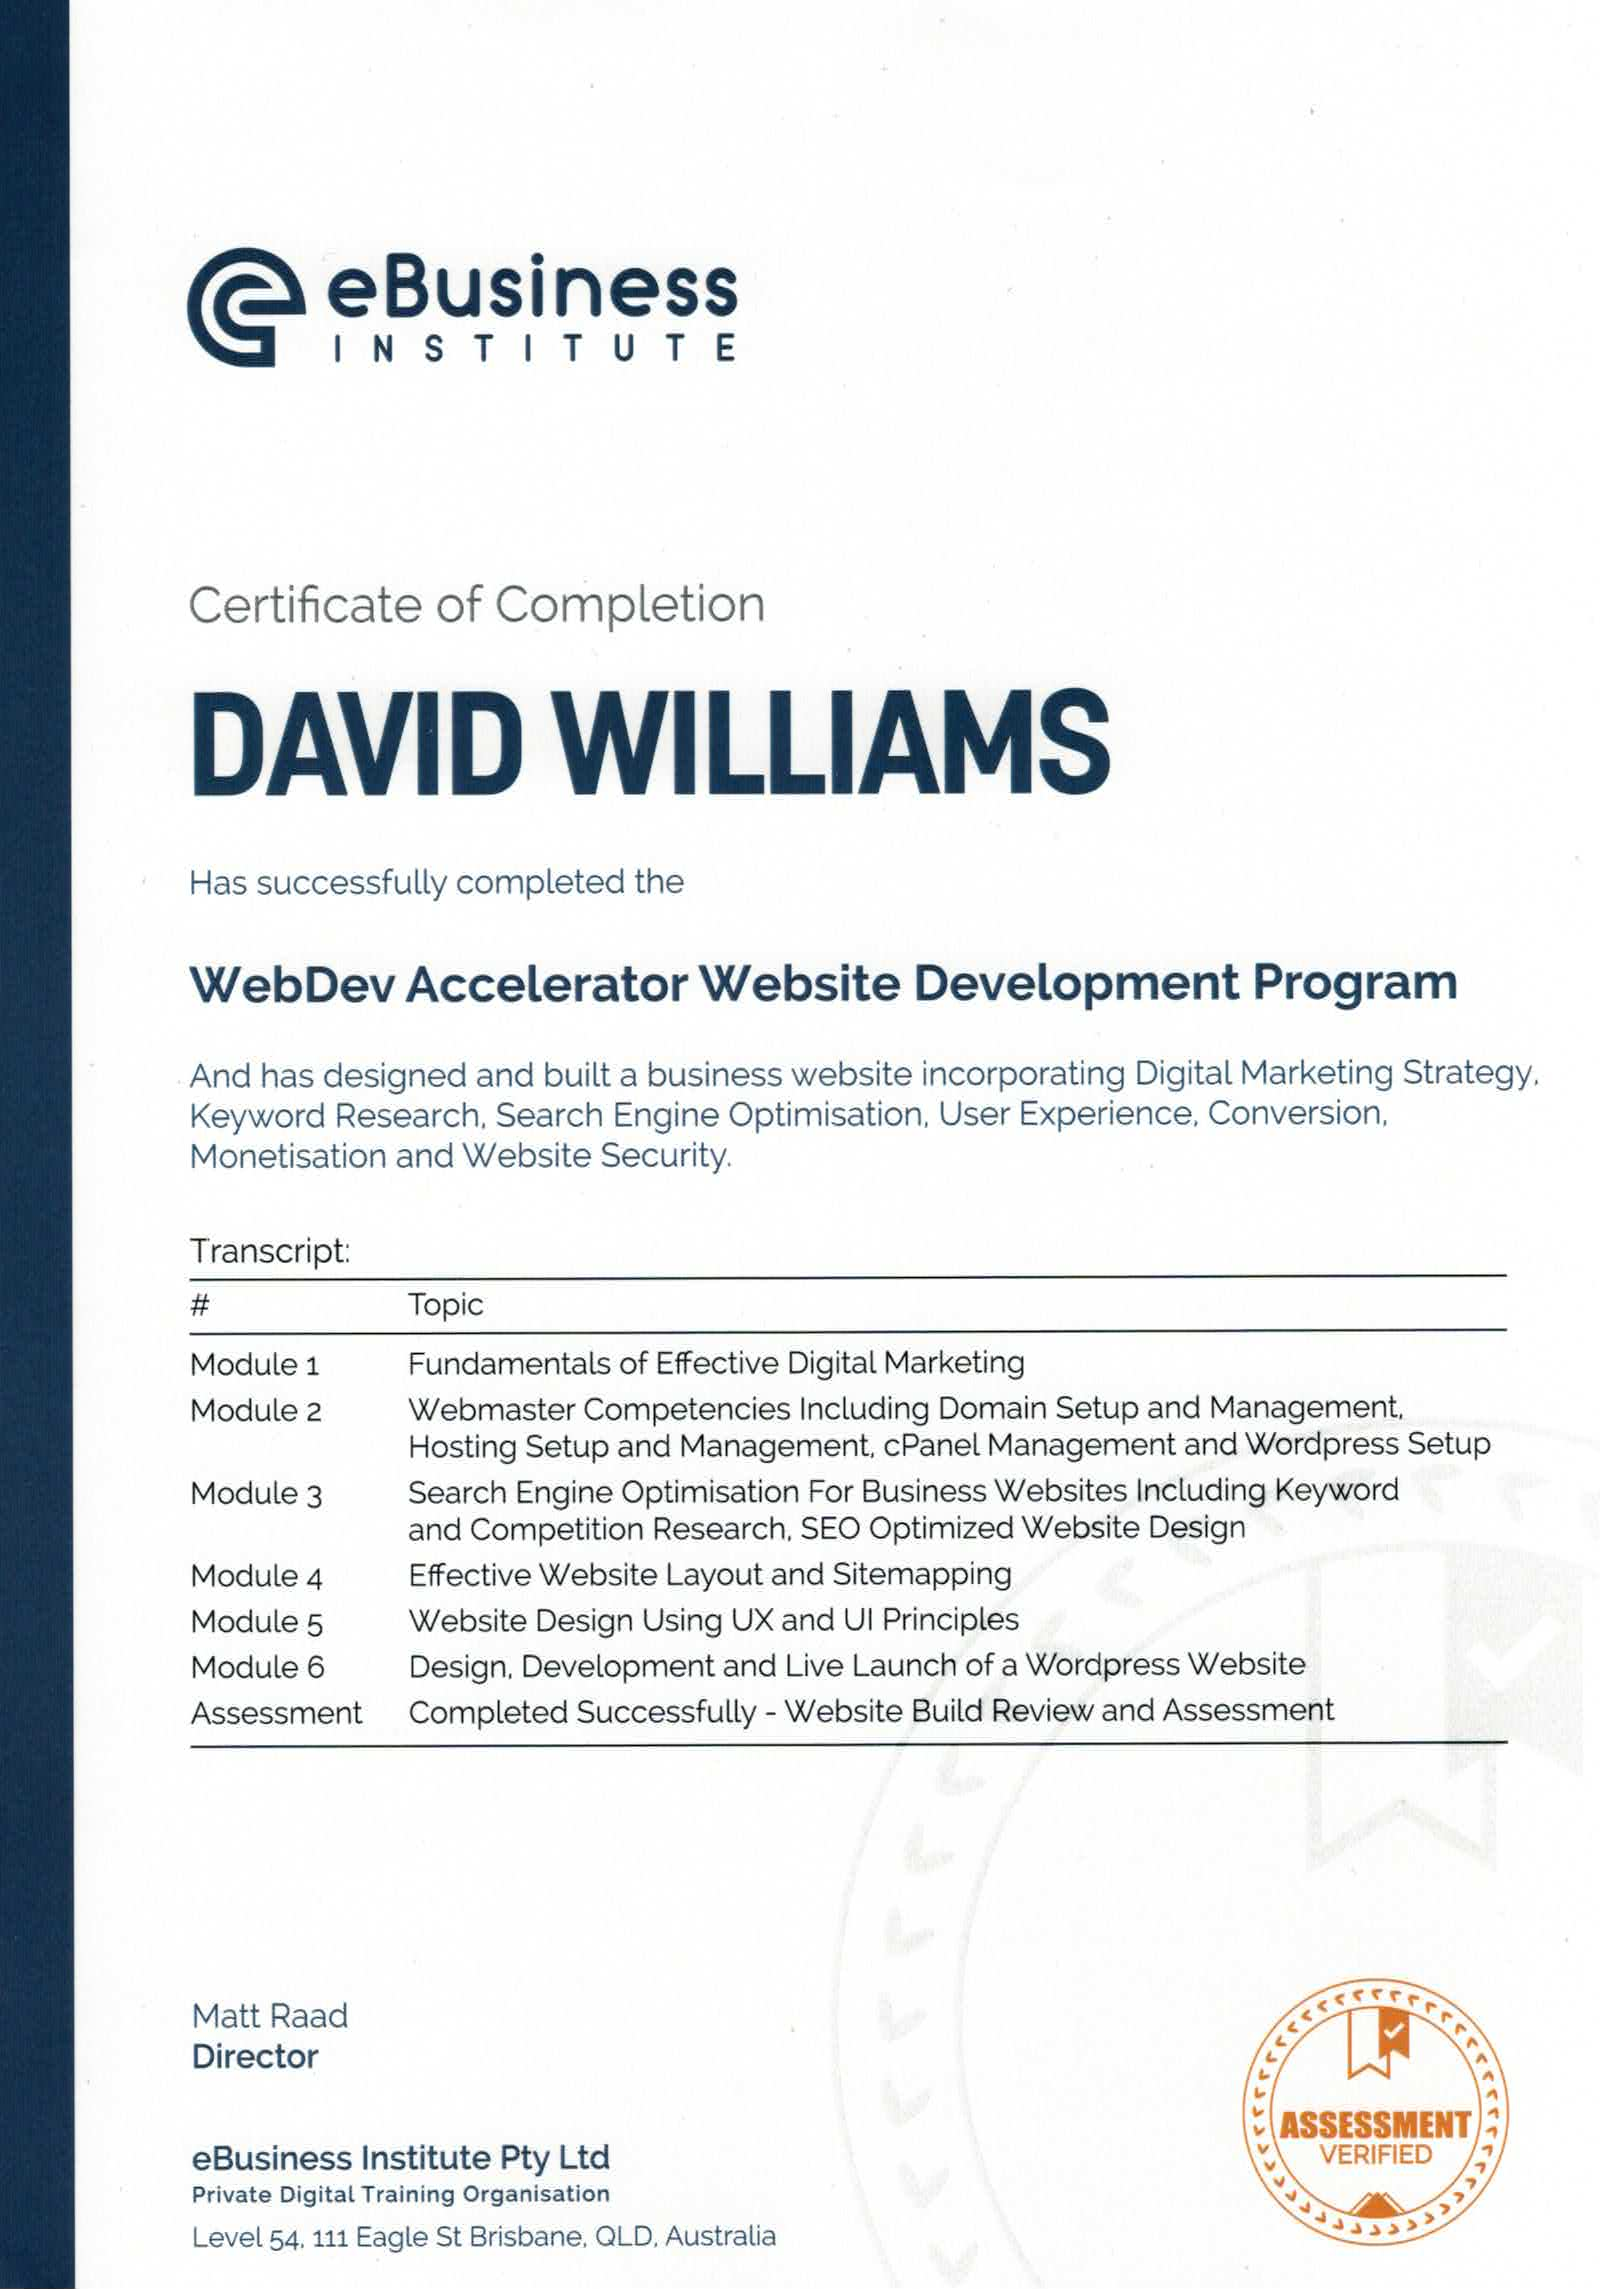 WebDev Accelerator Website Development Program - David Williams